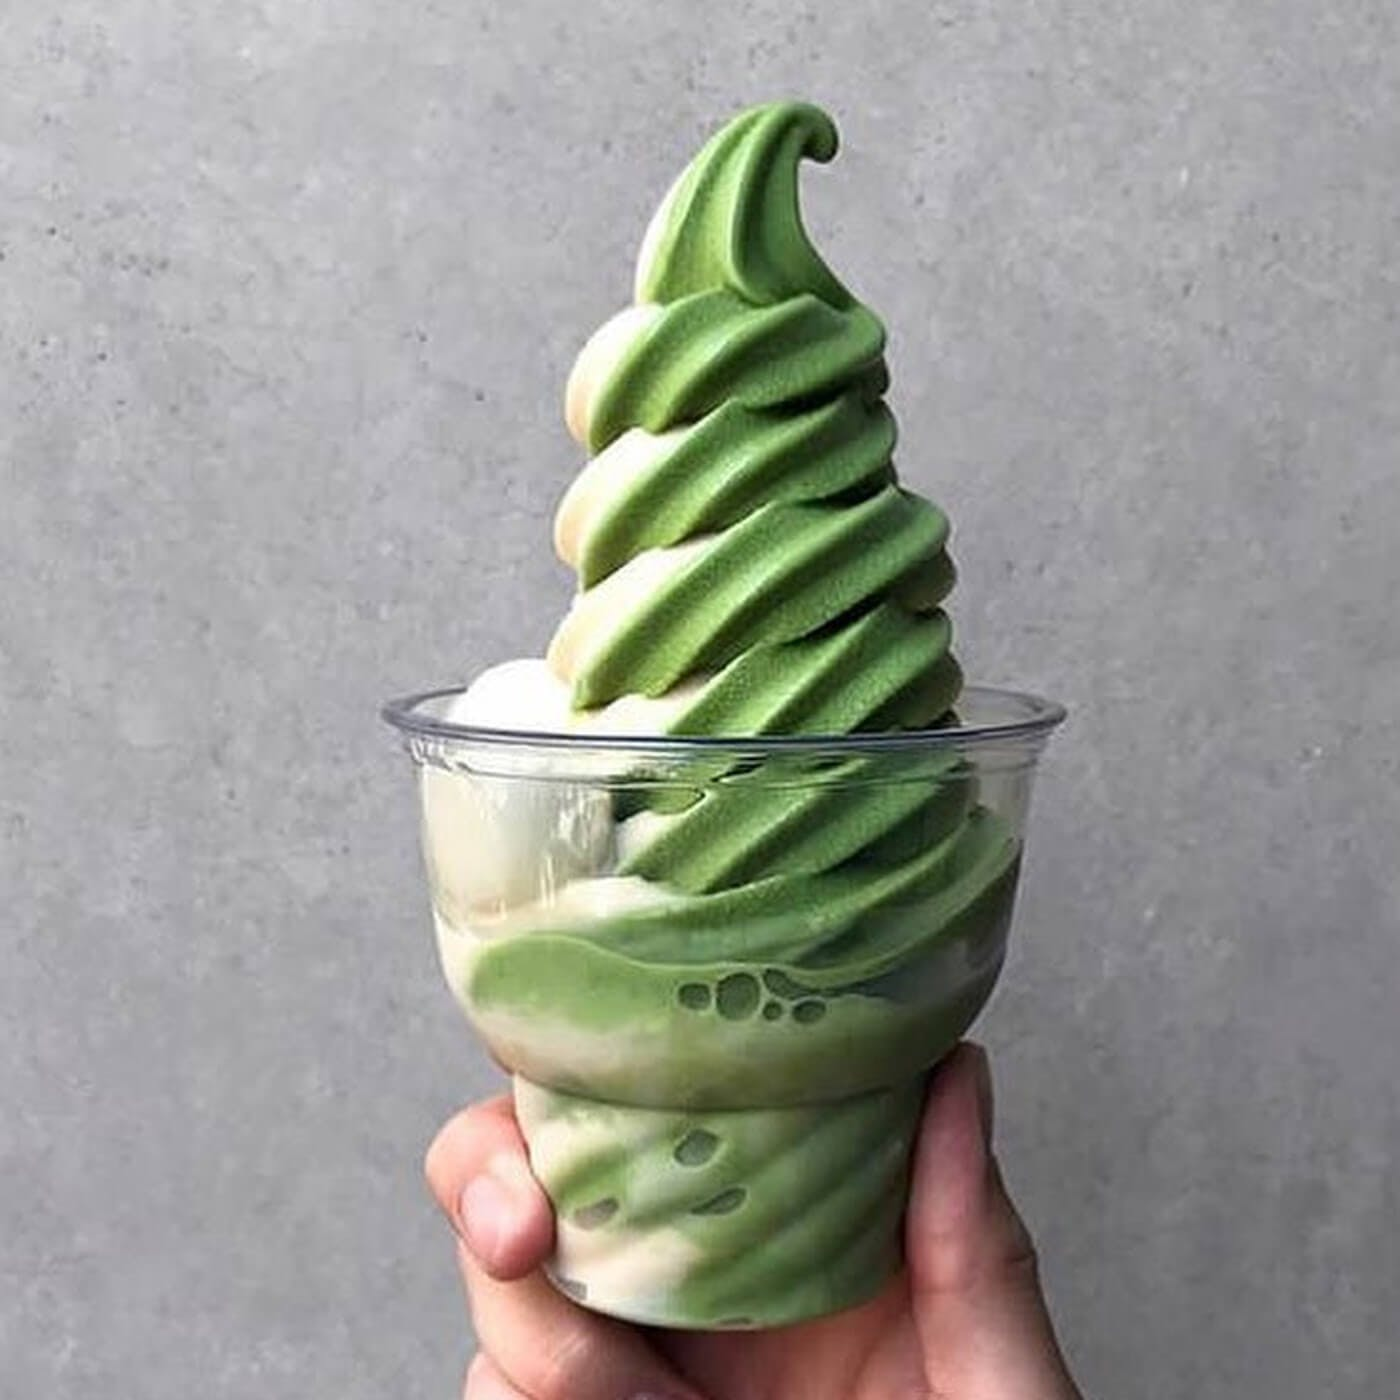 Japanese Matcha flavored ice cream